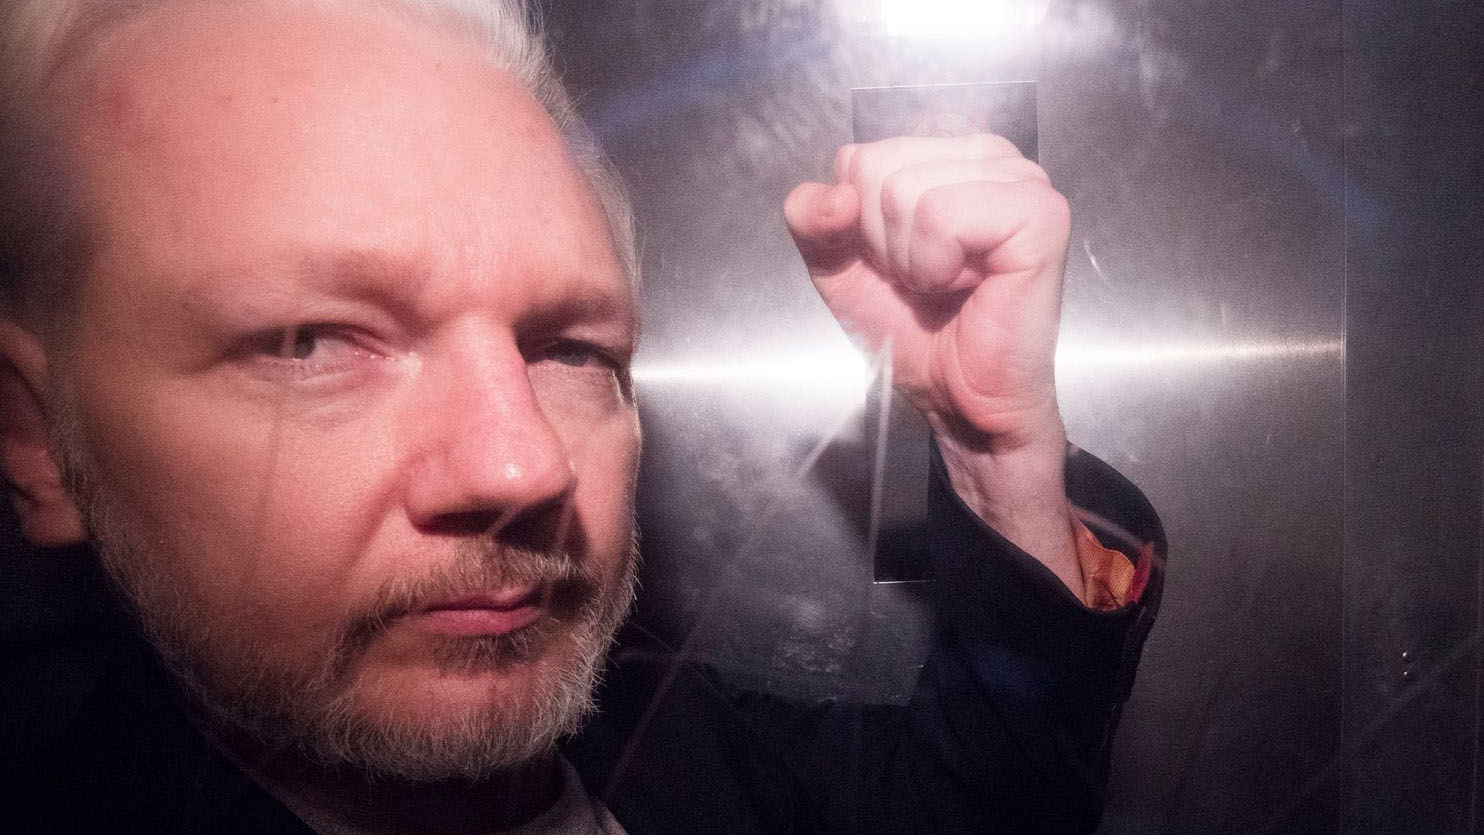 Some federal prosecutors disagreed with decision to charge Assange under Espionage Act